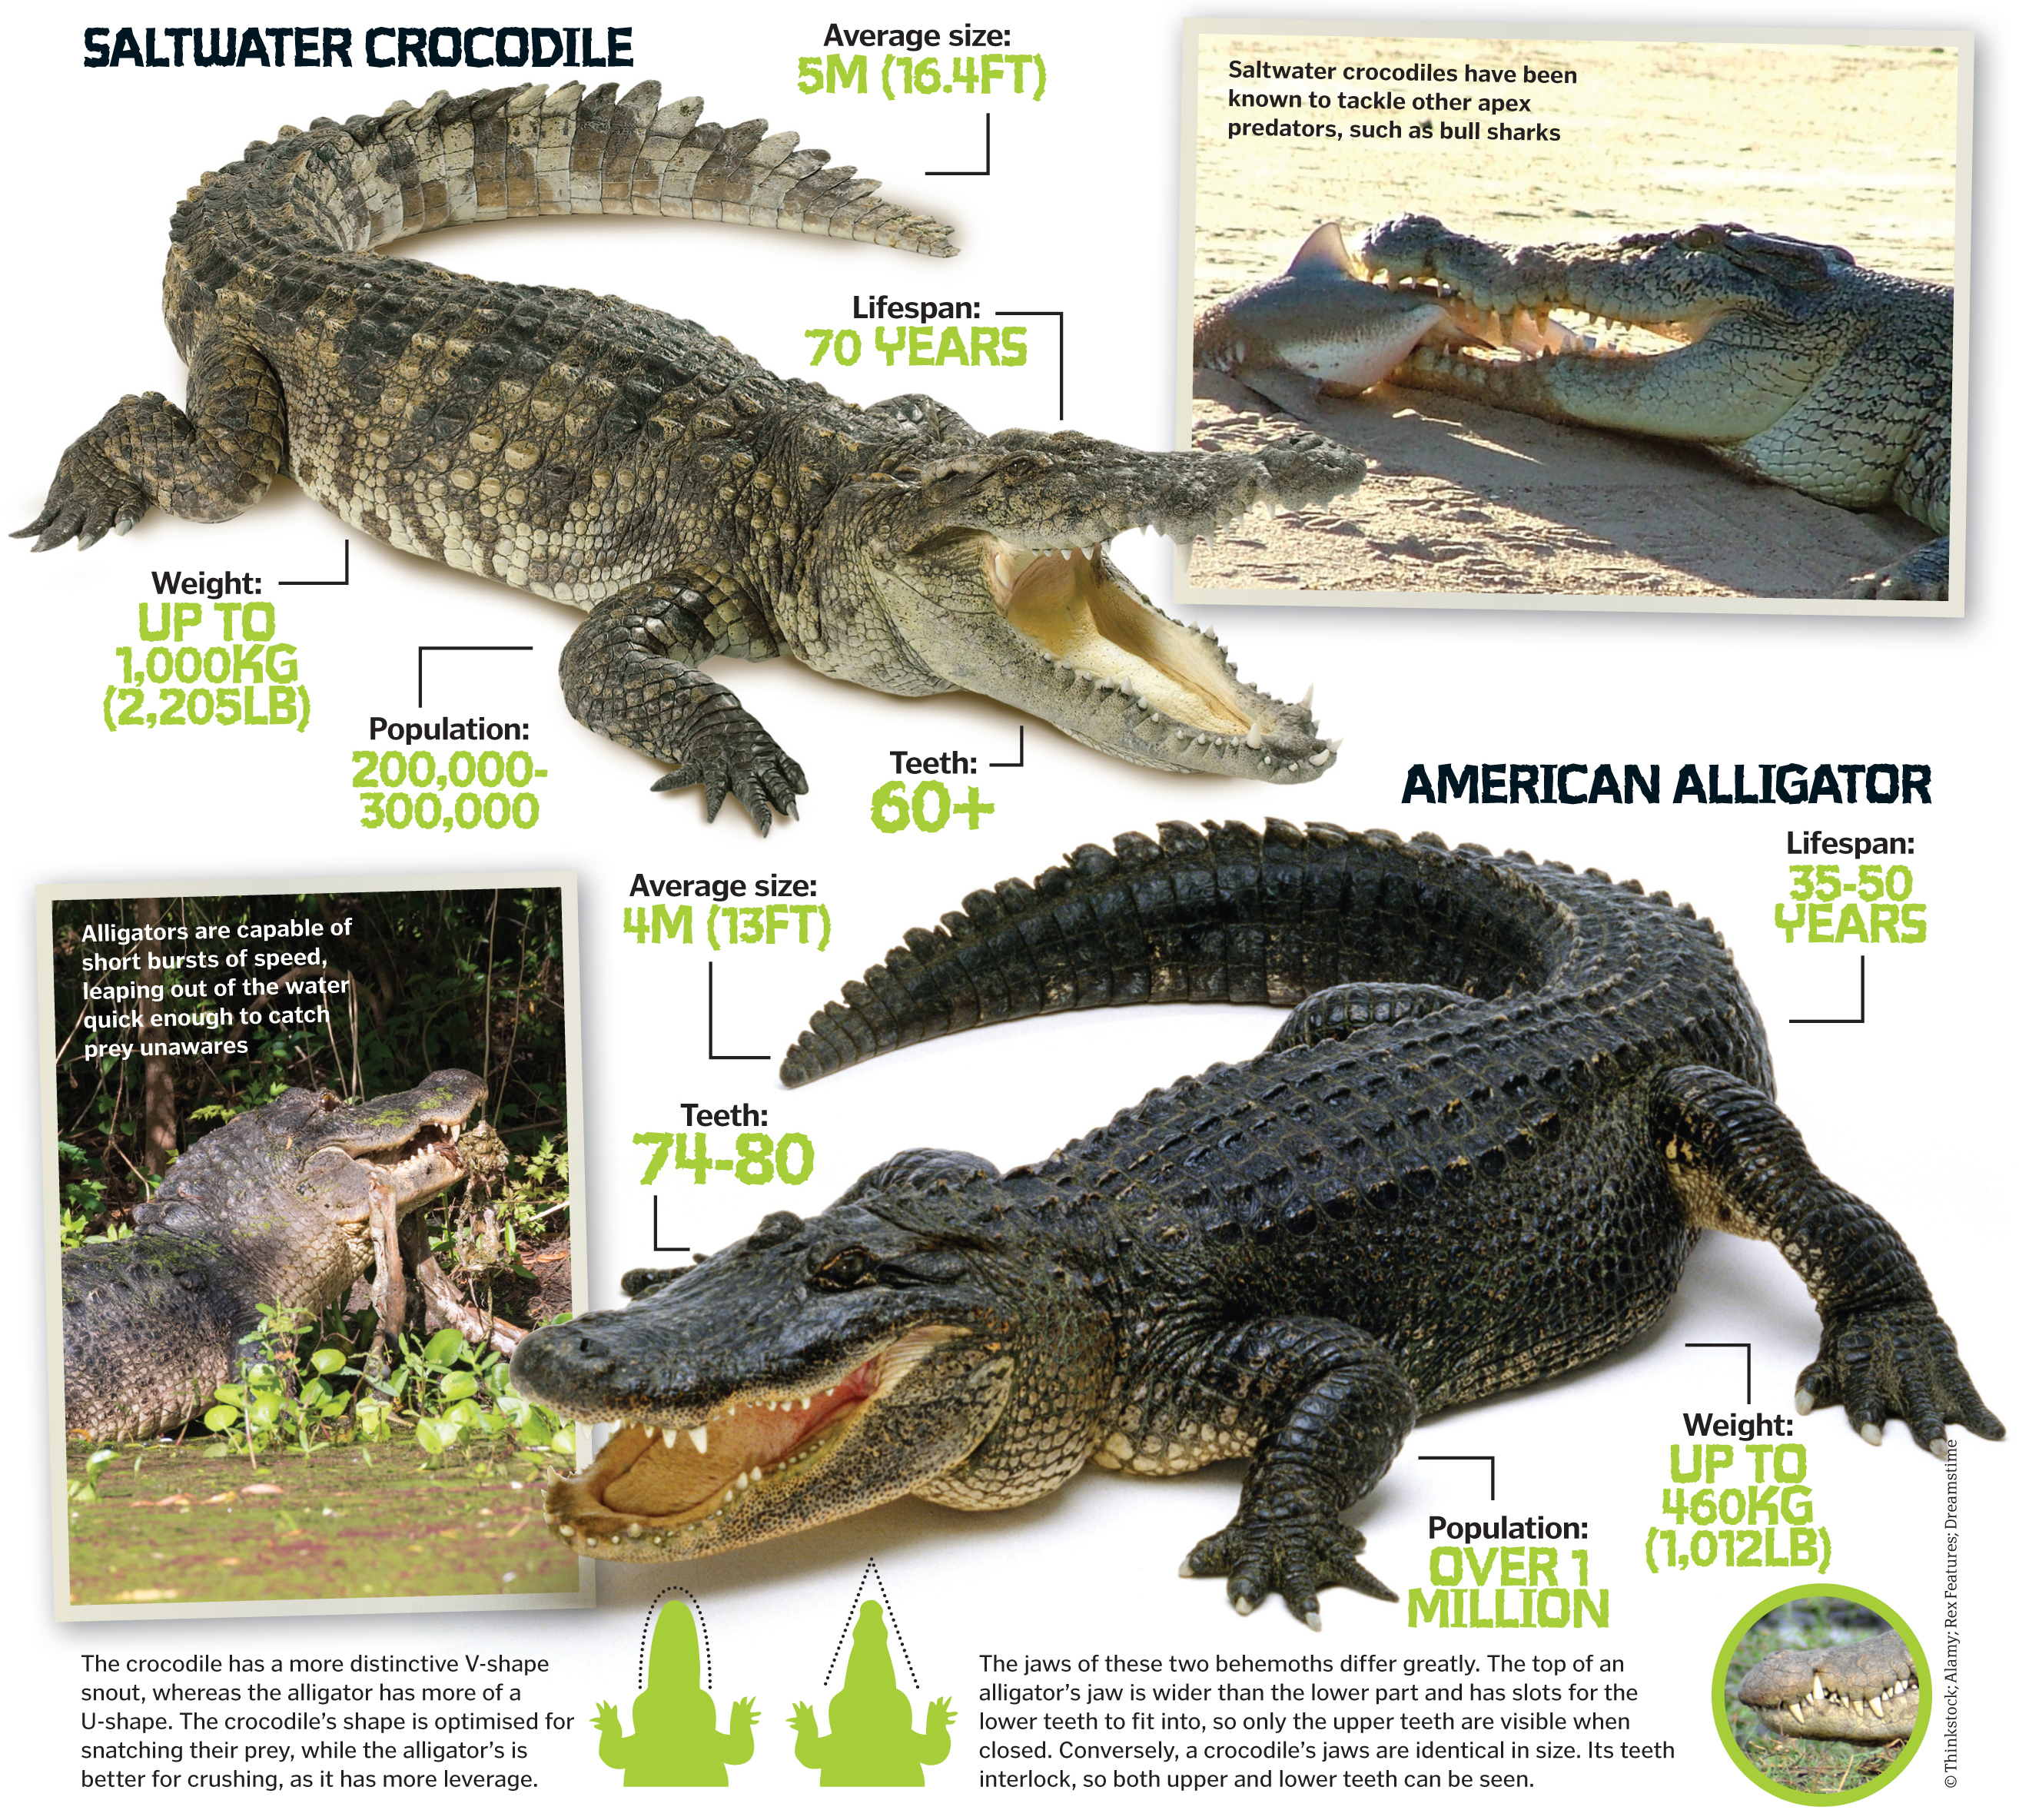 crocodile vs alligator Crocodiles have pores in their skin crocodiles and alligators are both very large reptiles with thick, scaly skin both alligator and crocodile skins are used to make various leather products, including.